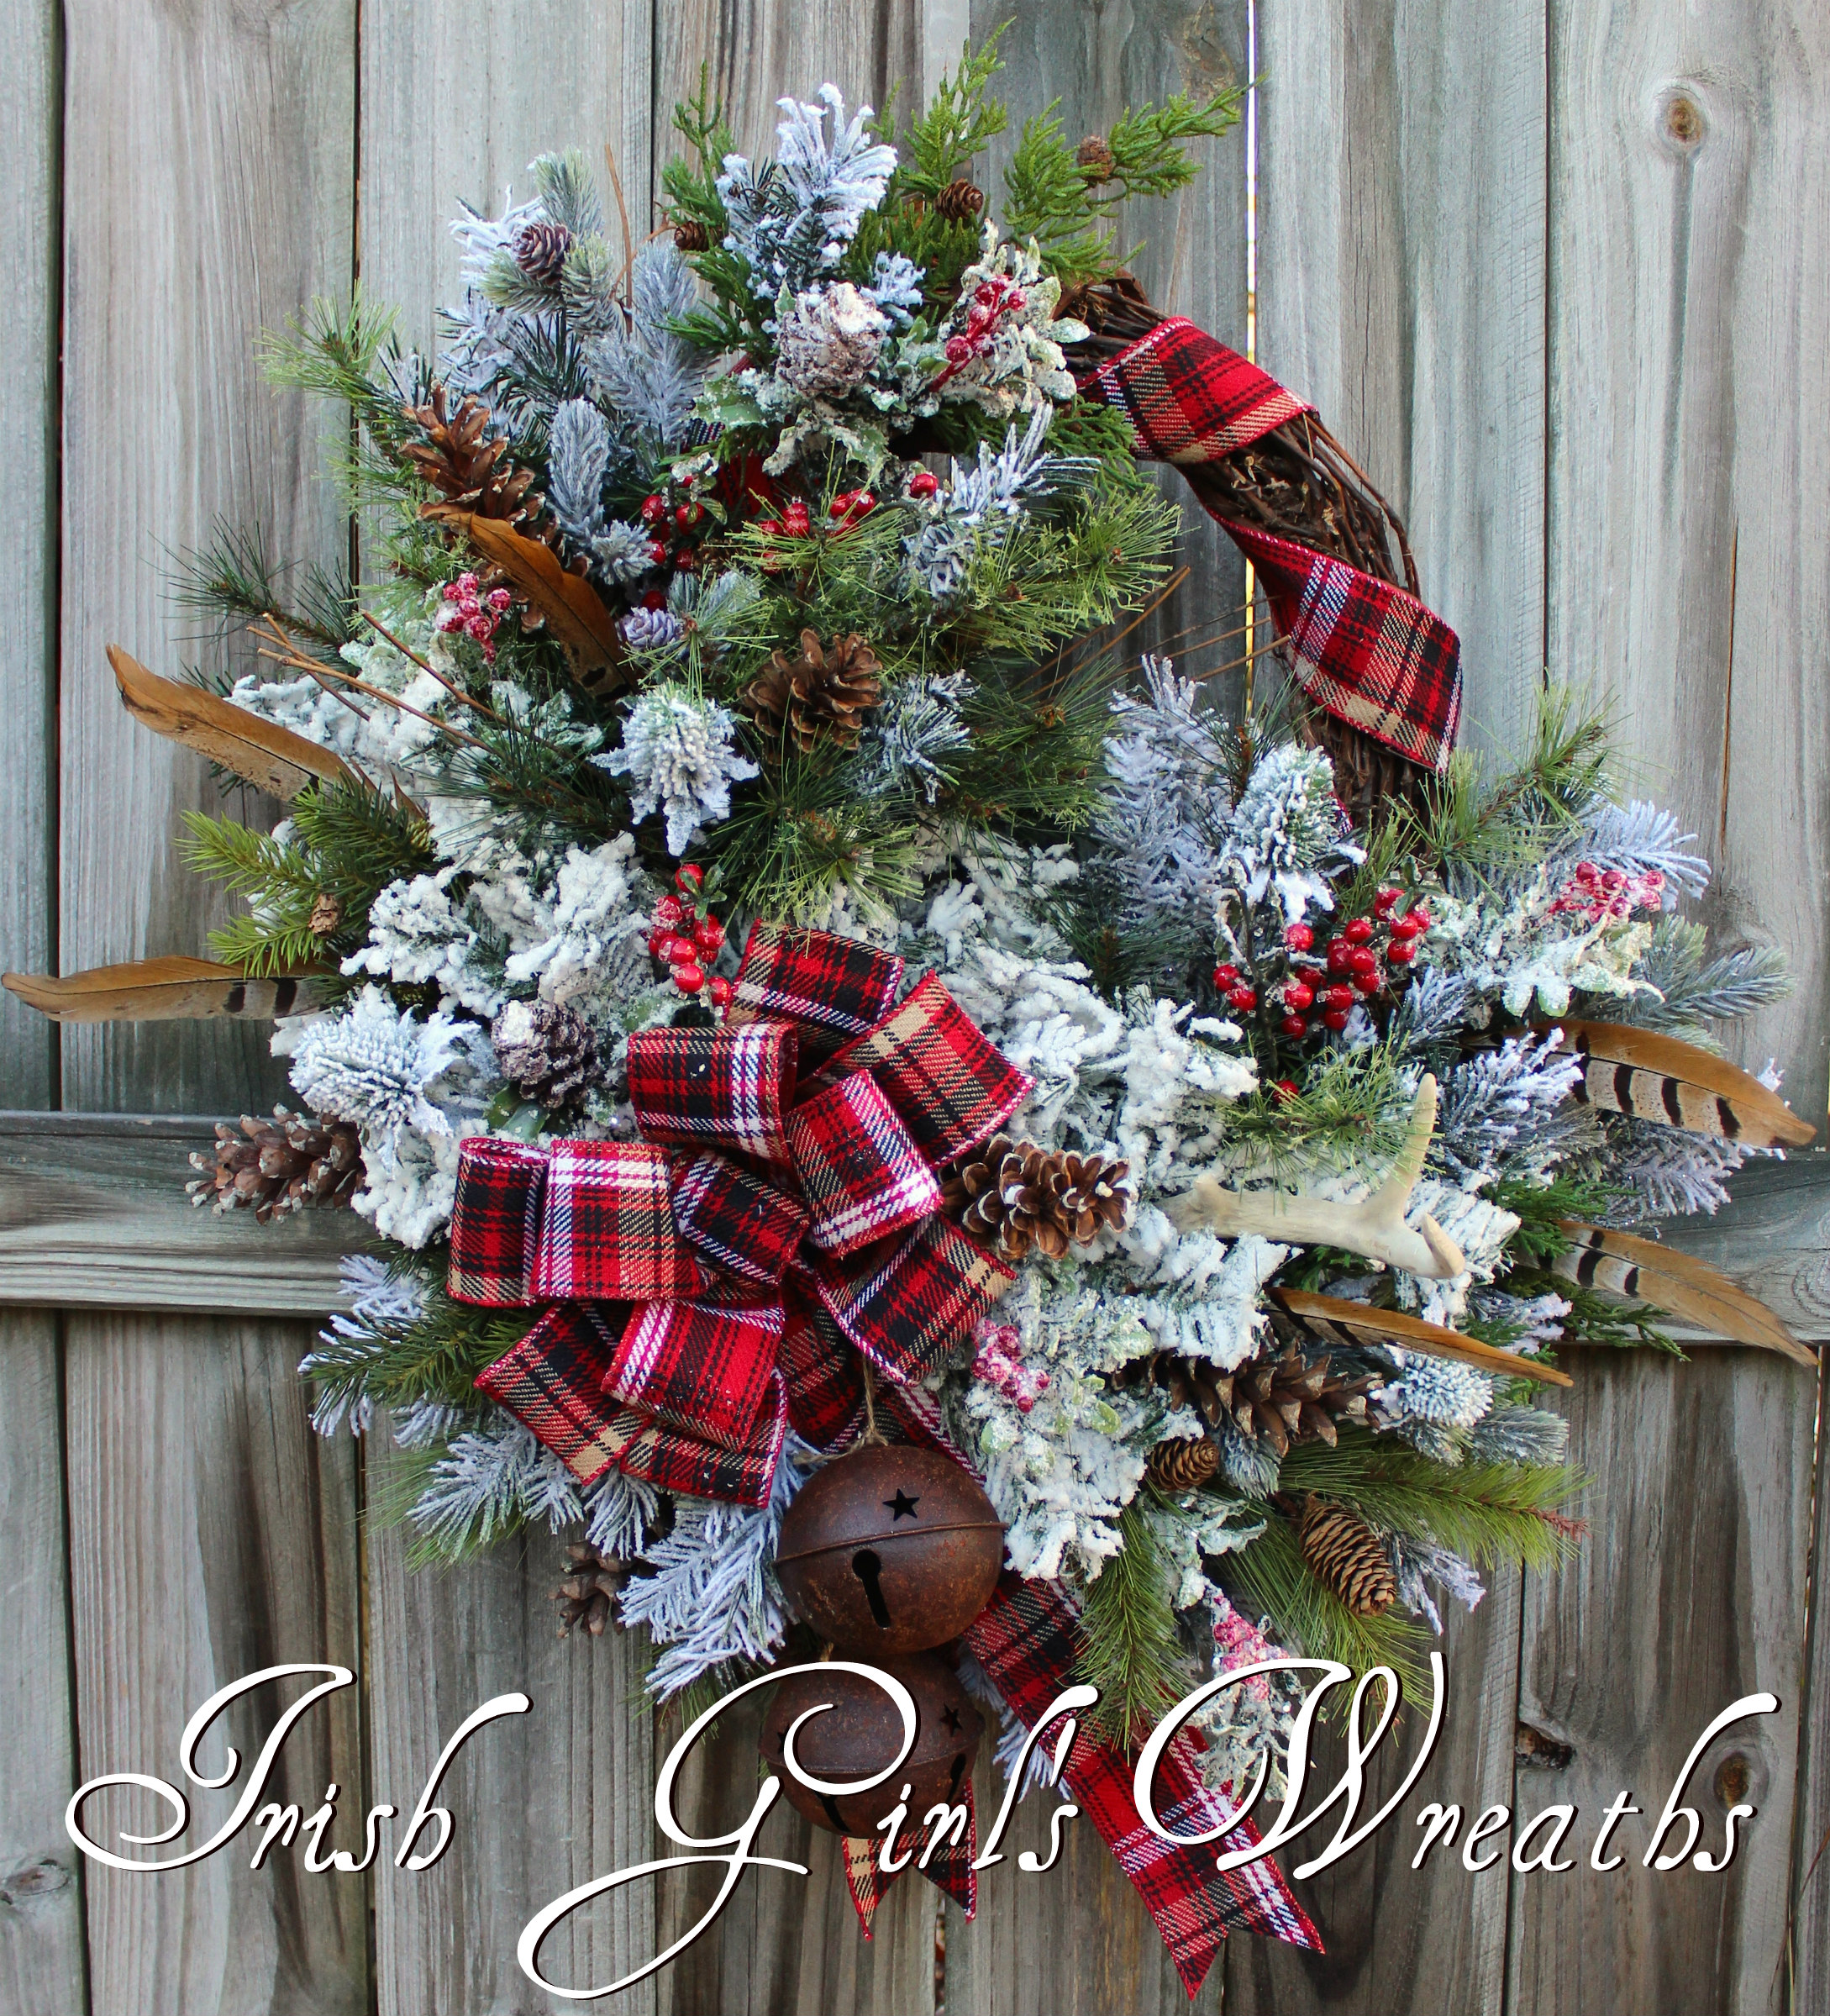 Celtic Scottish Highland Christmas Wreath #2, XL Rustic Tartan Woodland Winter Lodge Wreath